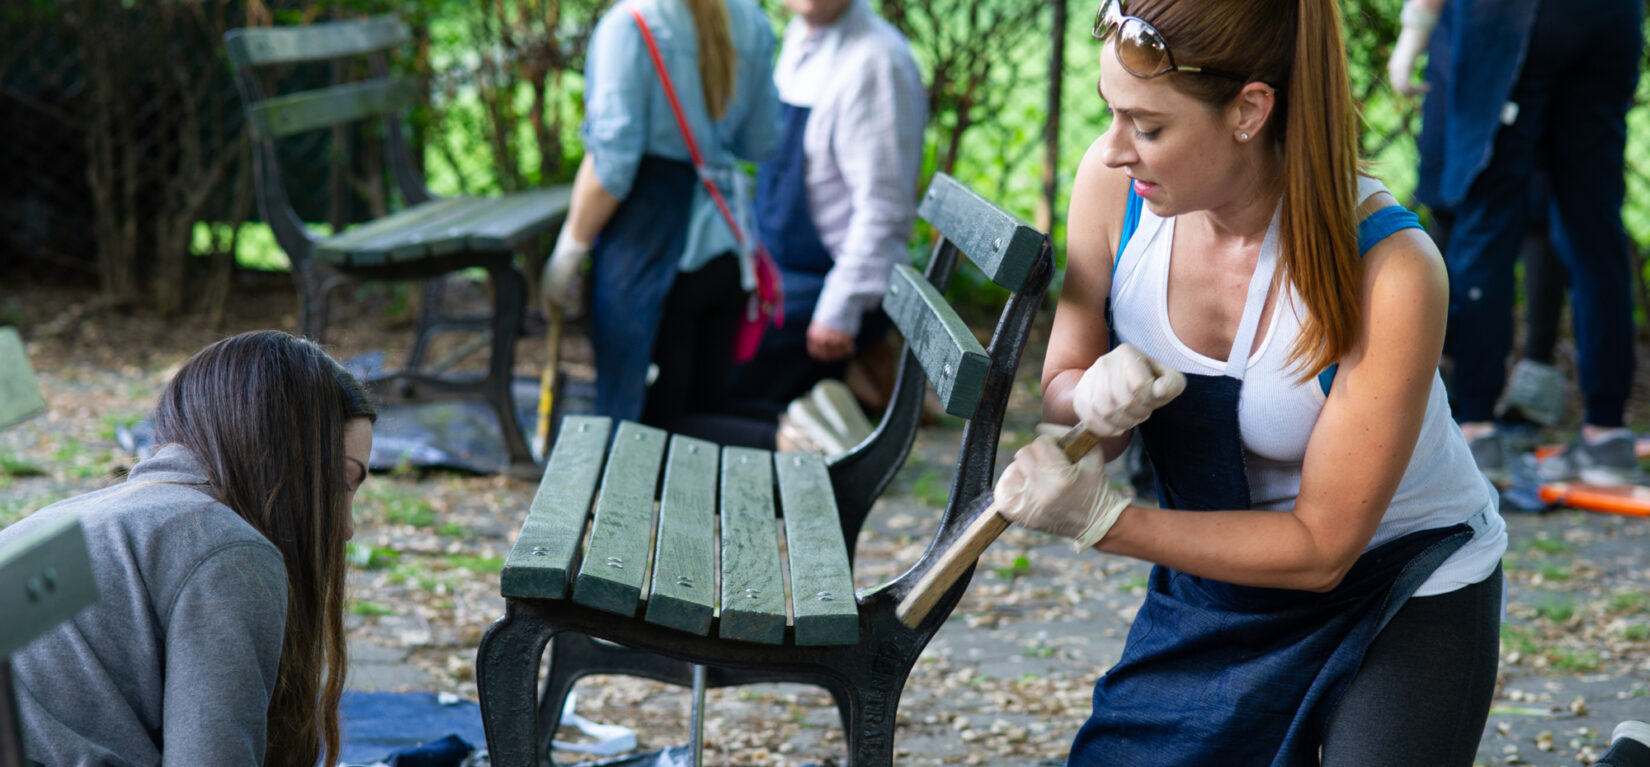 Seasonal volunteers help out refurbishing park benches